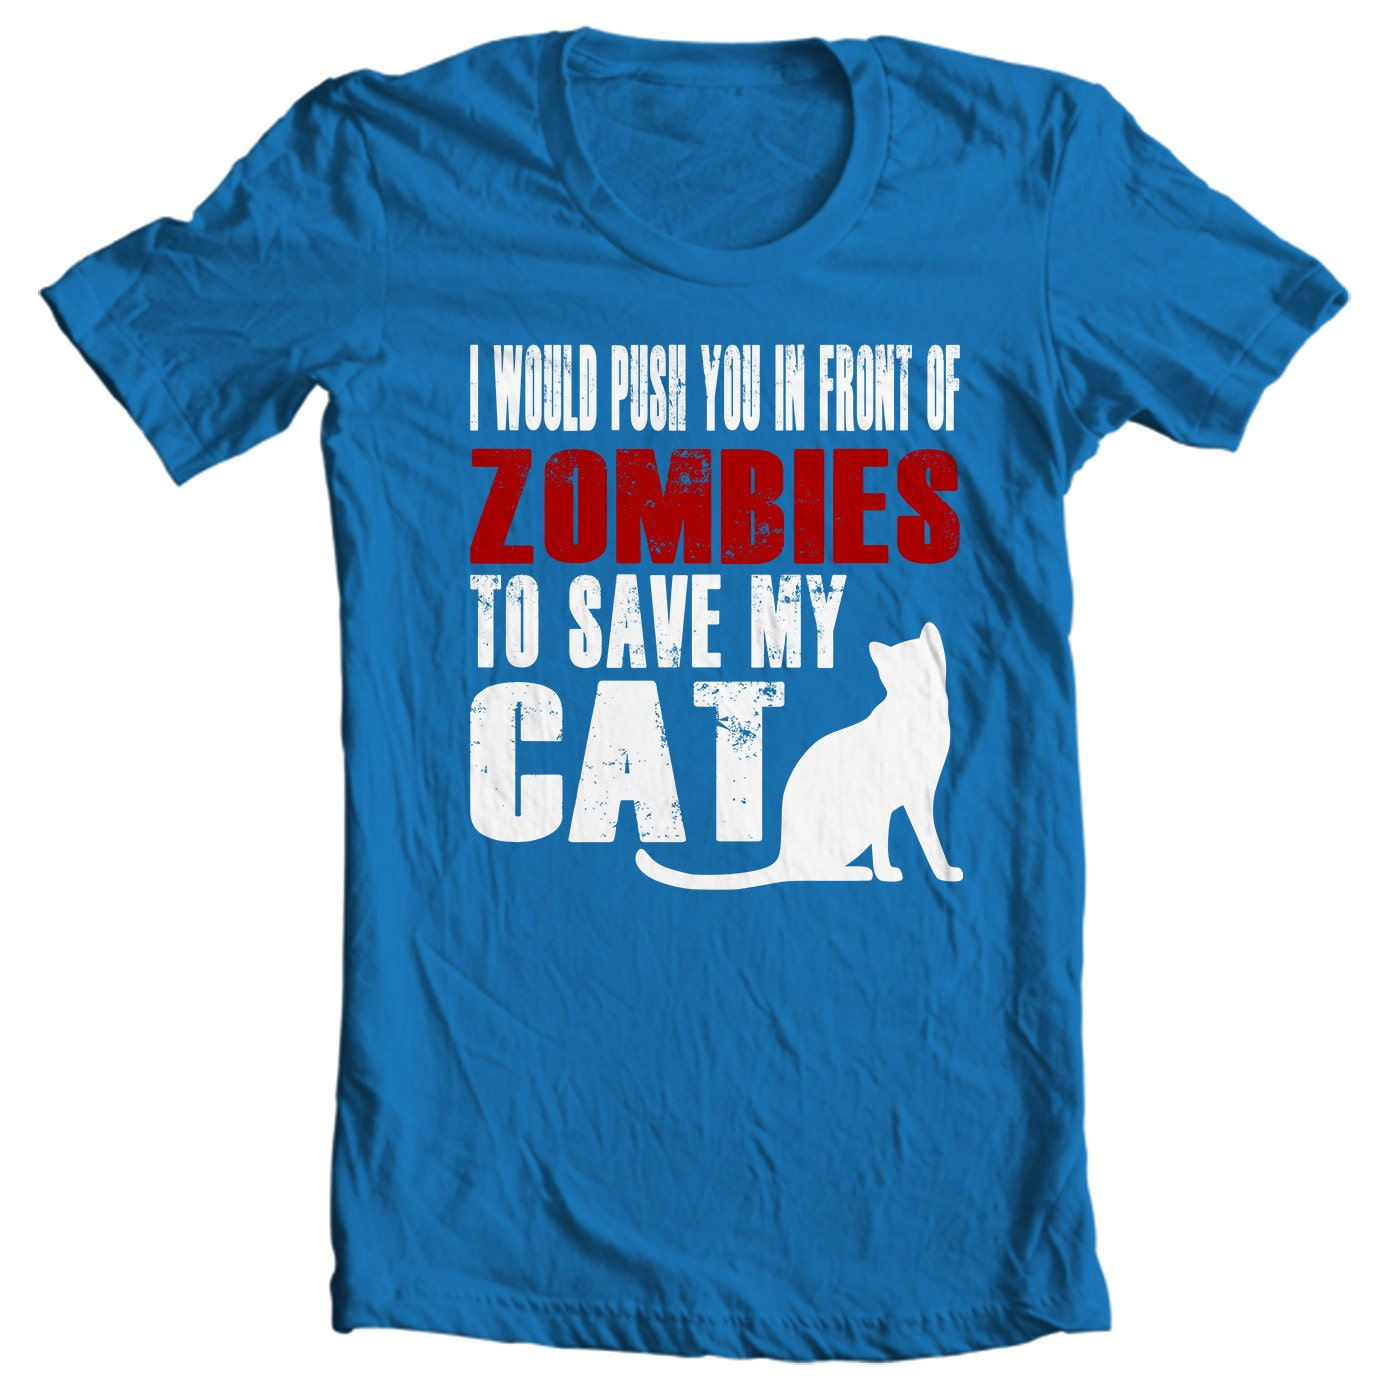 Cat T-shirt - I Would Push You In Front Of Zombies To Save My Cat T-shirt